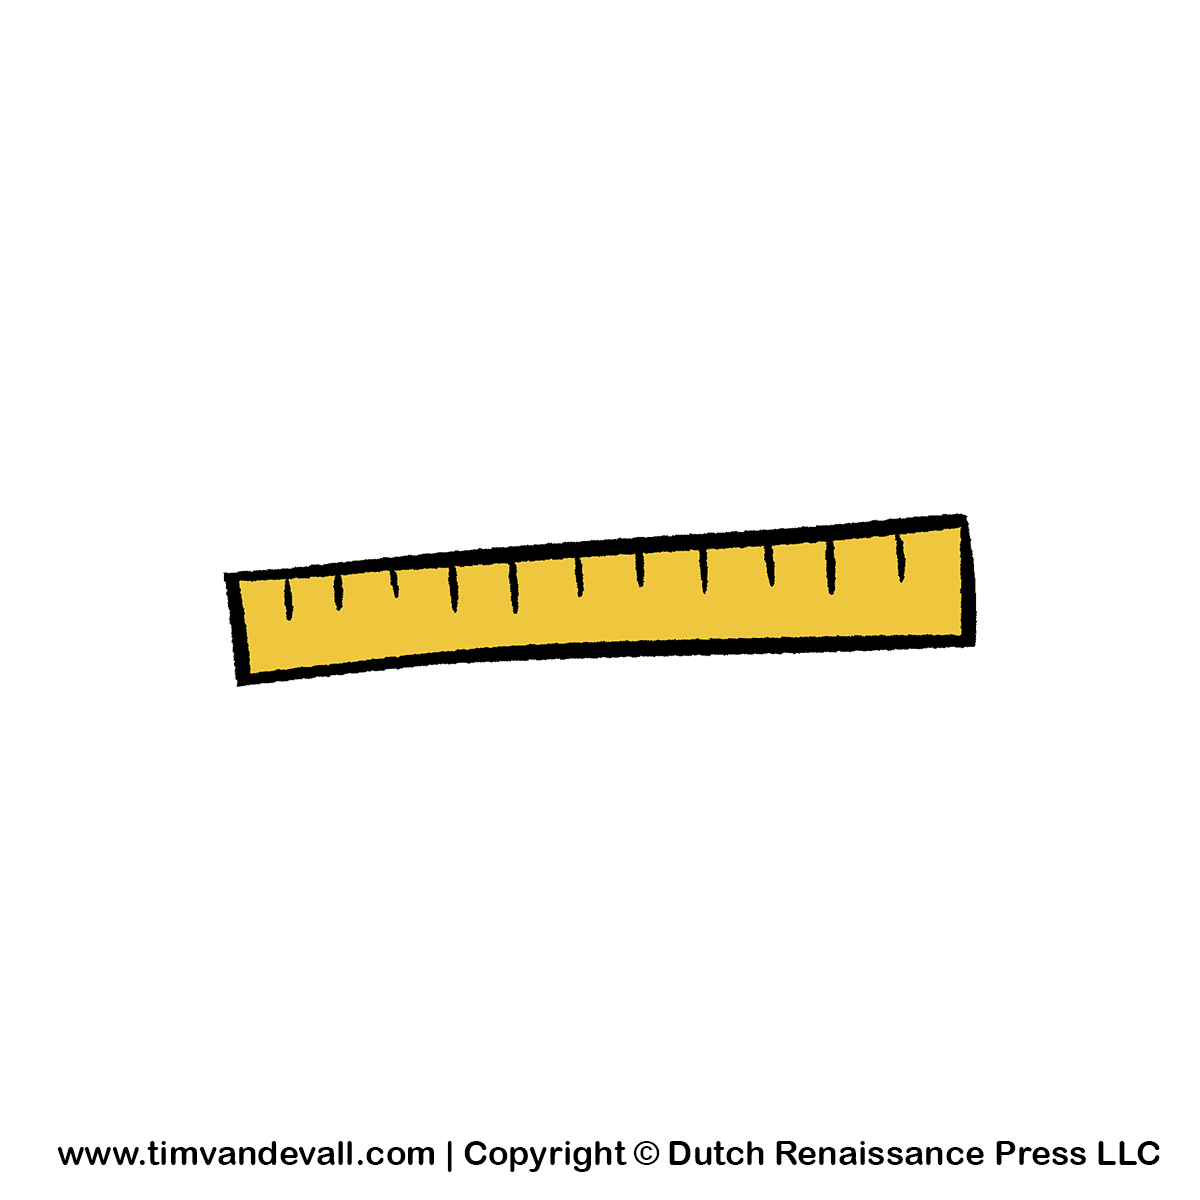 School Ruler Clip Art Ruler clipart